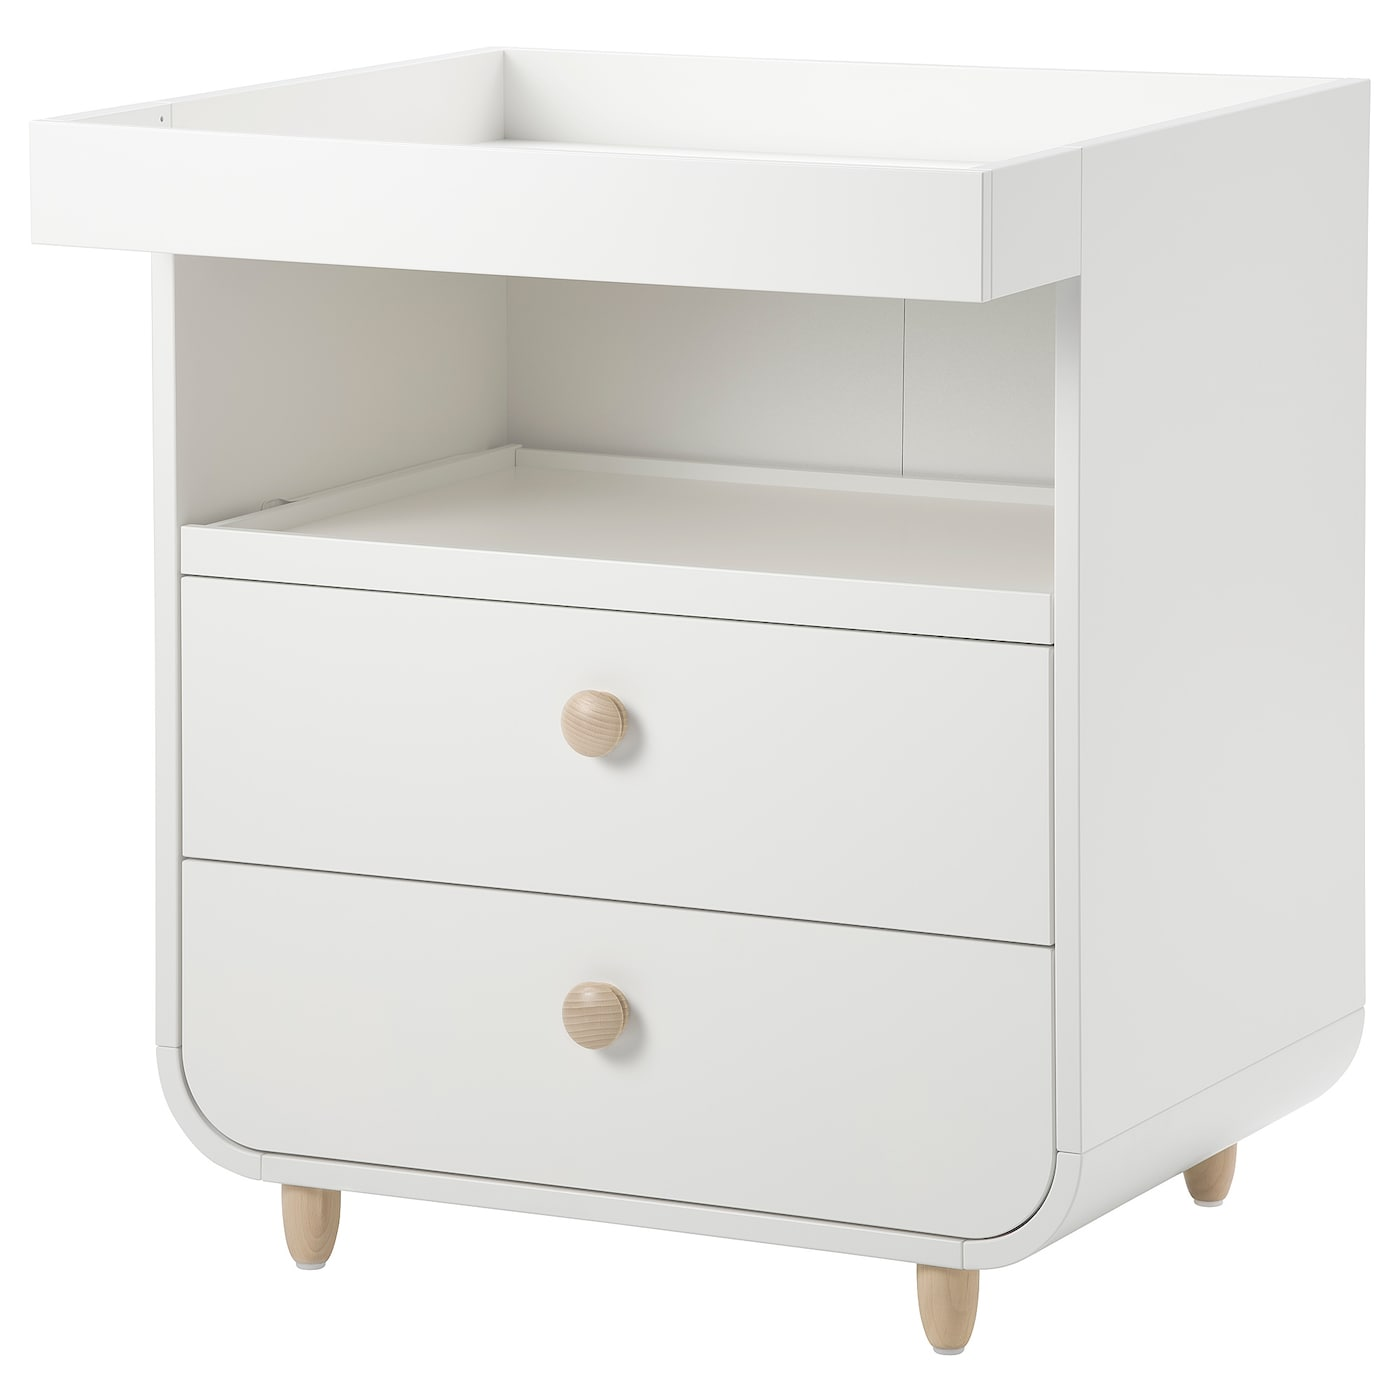 Ikea Diktad Baby Change Unit + 3Drawers